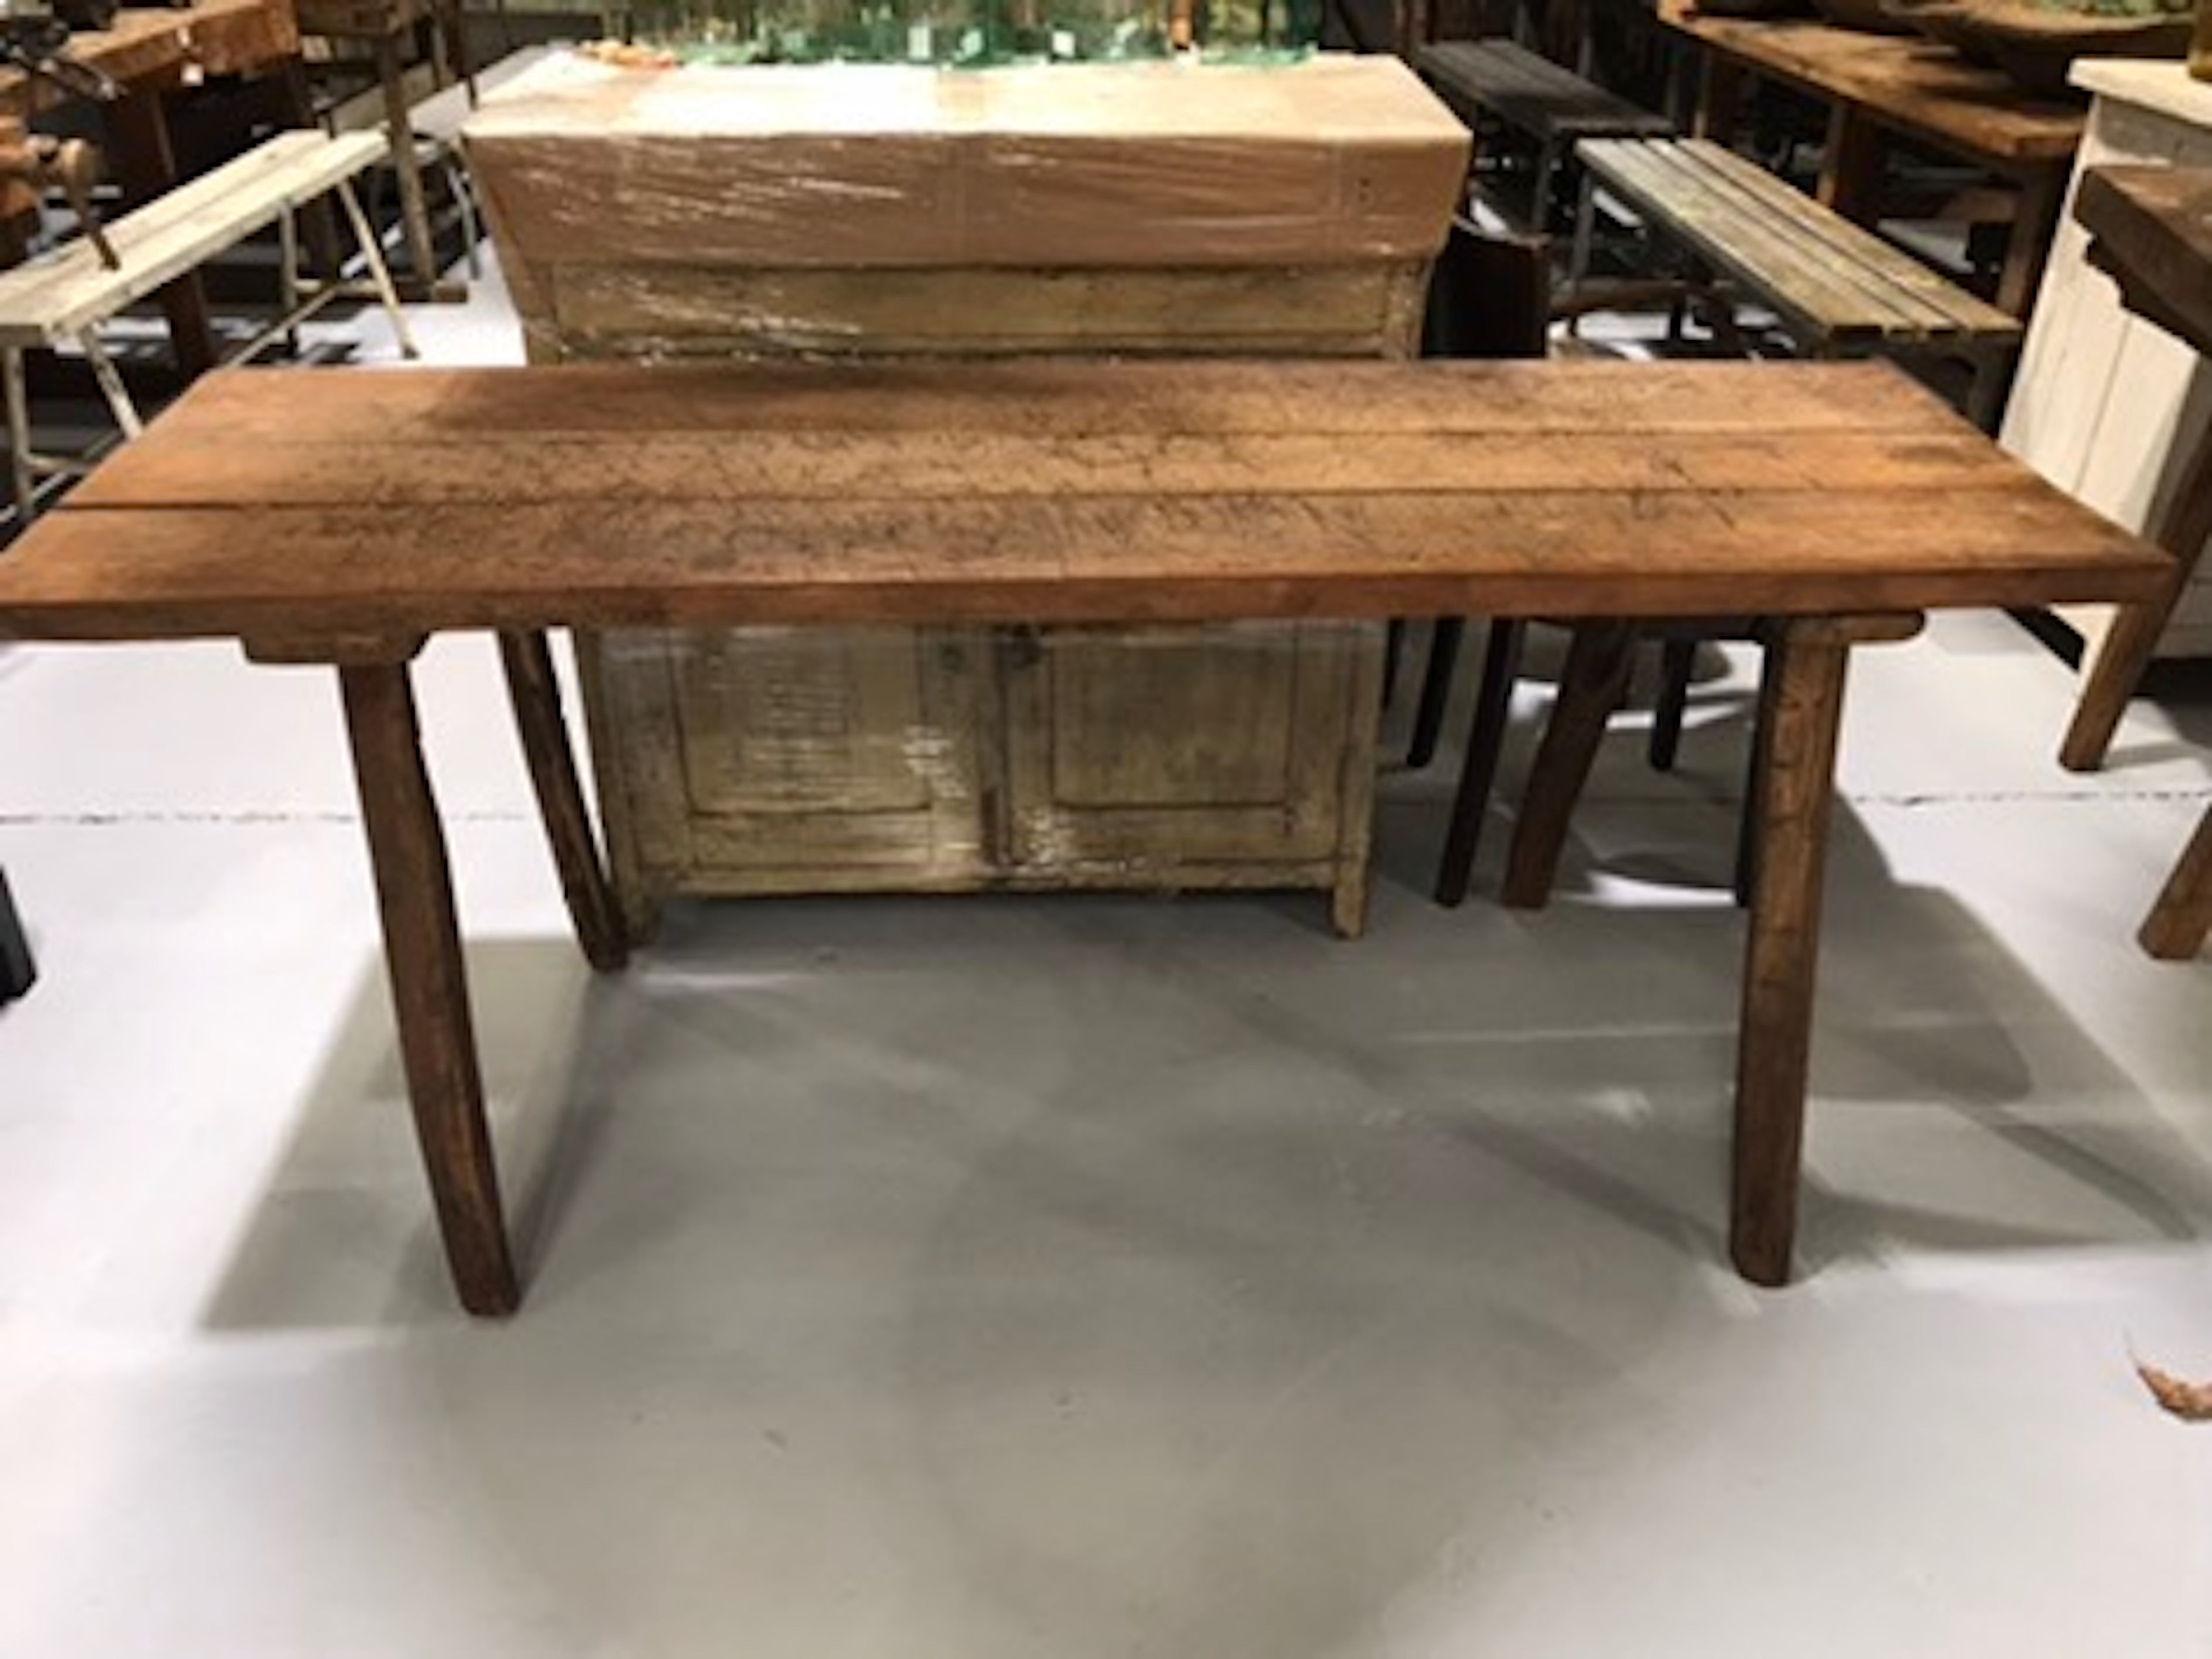 Vintage industrial European wooden hallway table console #1970